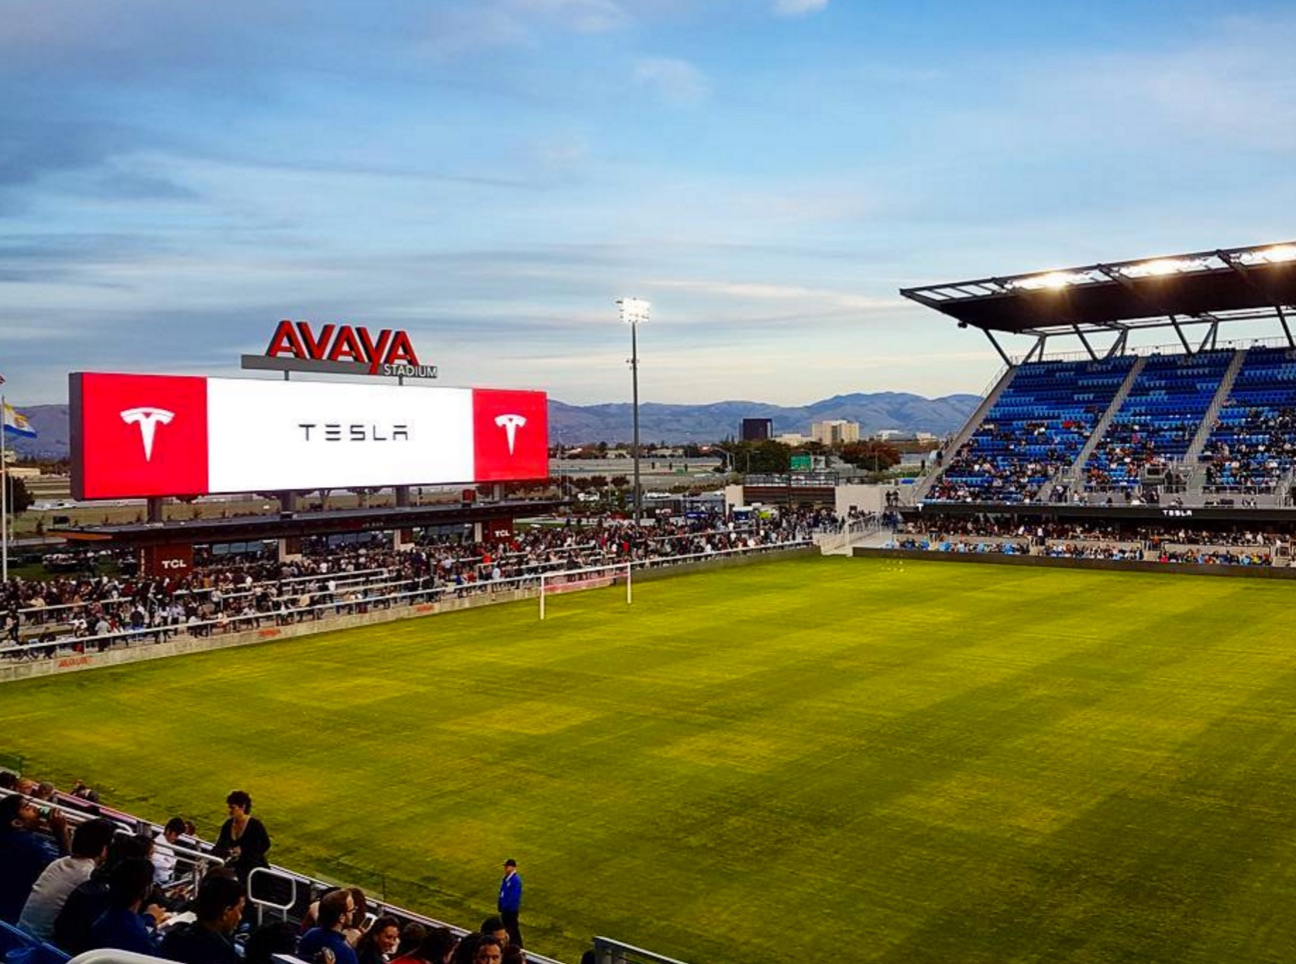 tesla-q3-celebration-party-avaya-stadium